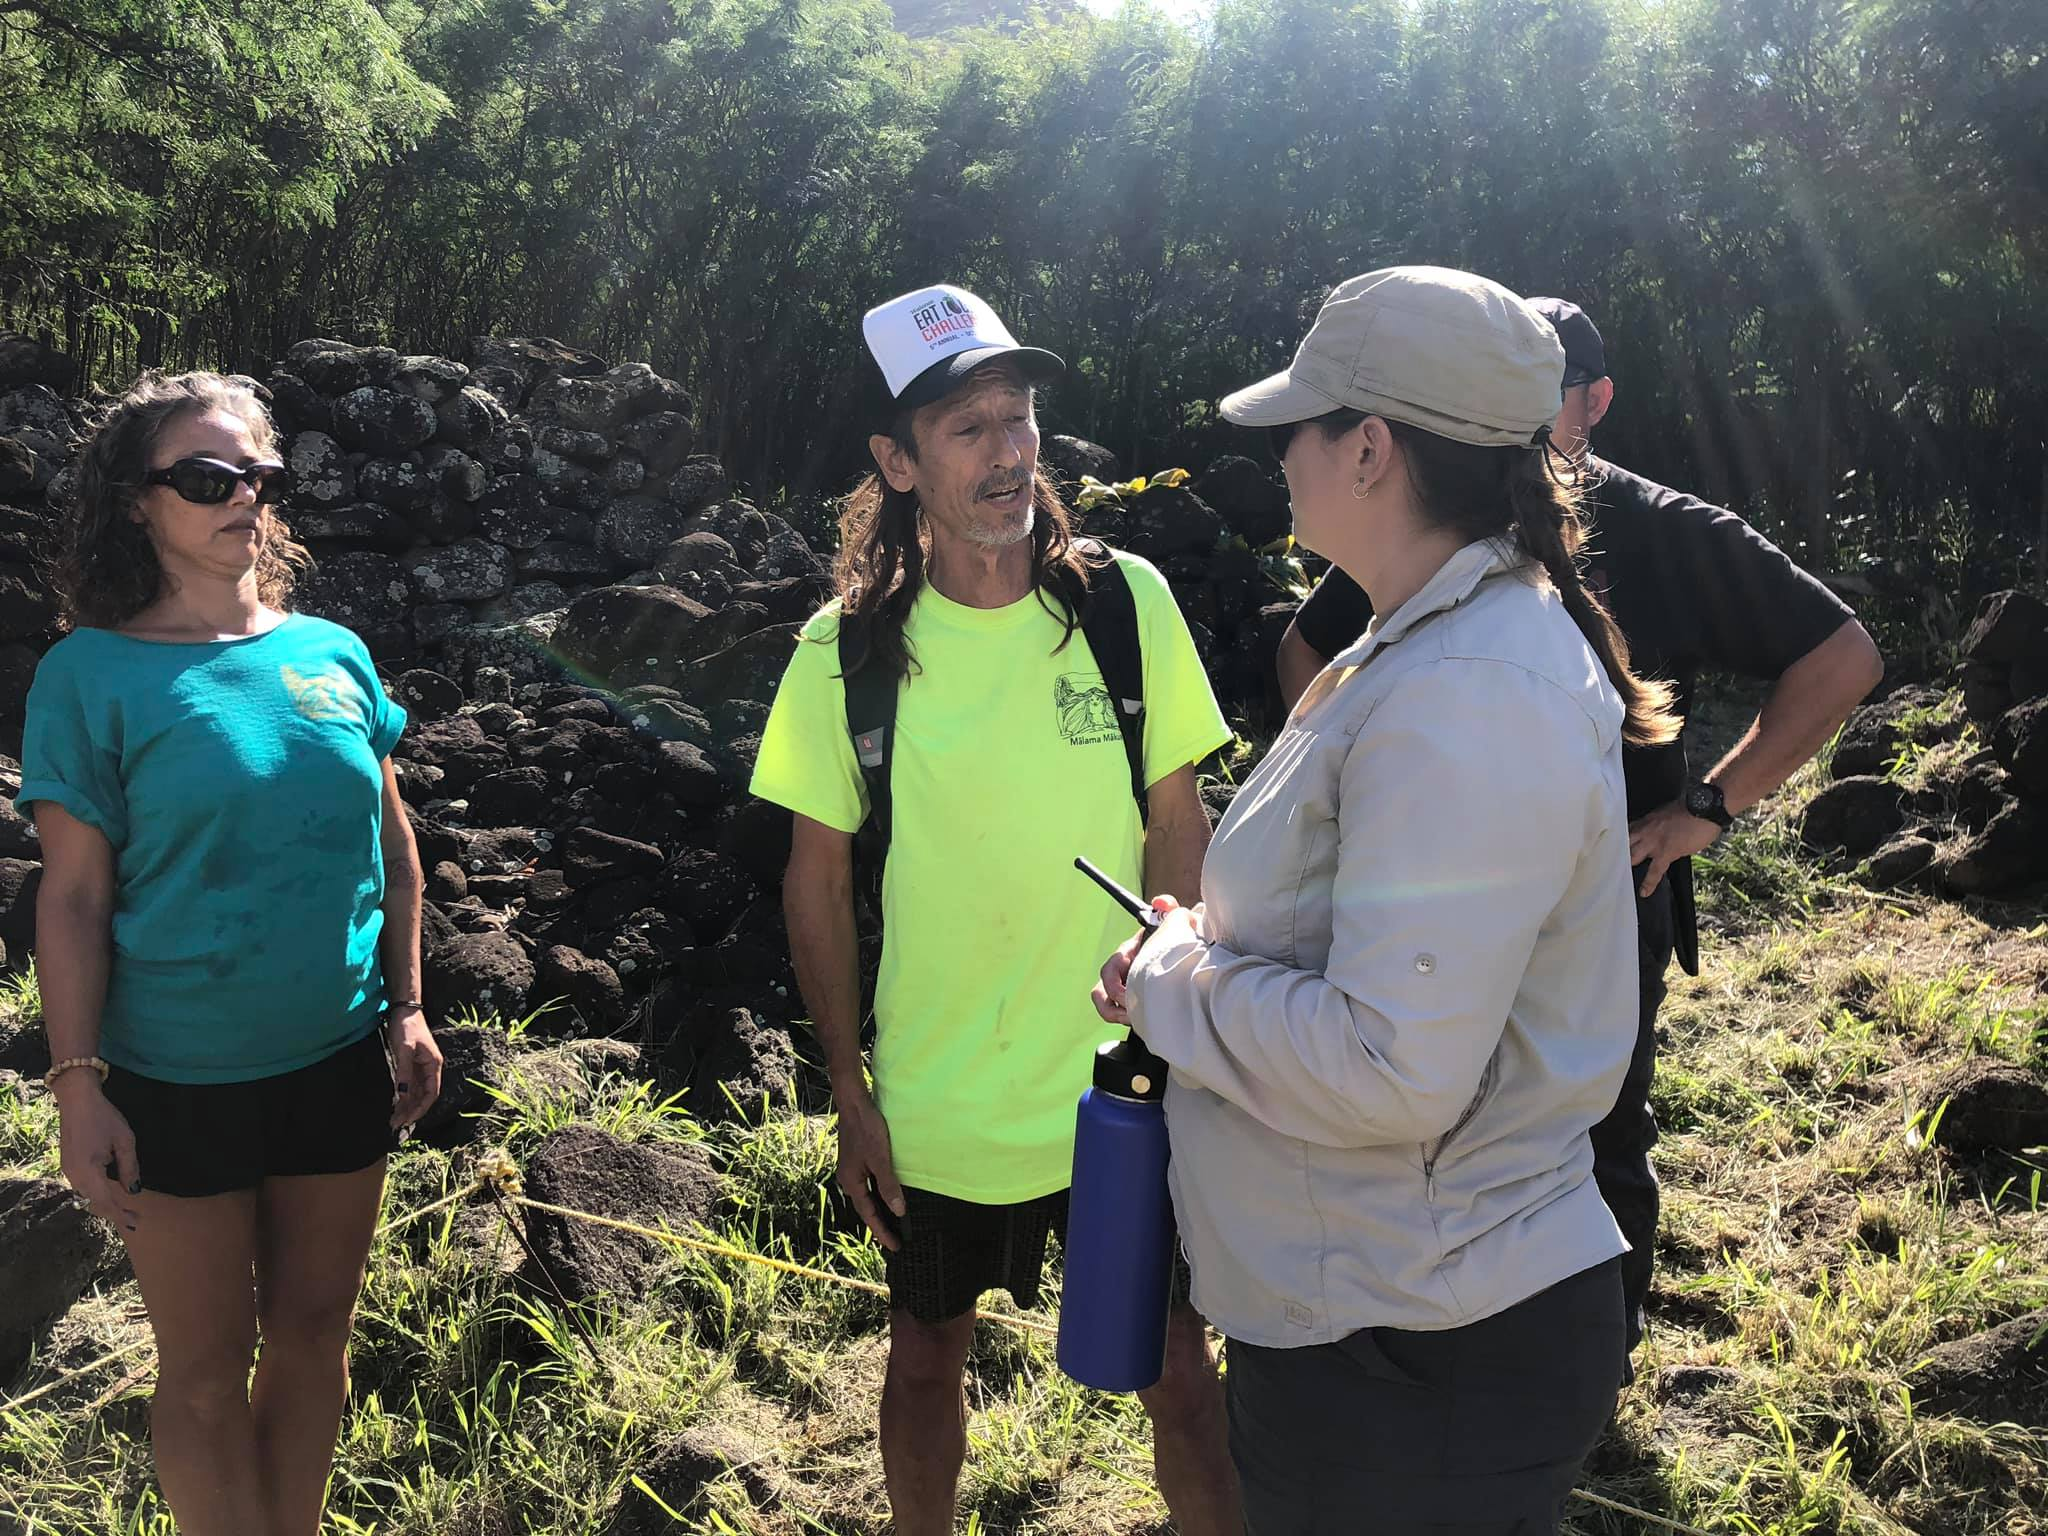 Vince Kanaʻi Dodge makes it clear that the hoʻokupu will not be removed, even under threat of police arrest, because, he said, his orders came from sacred Mākua.